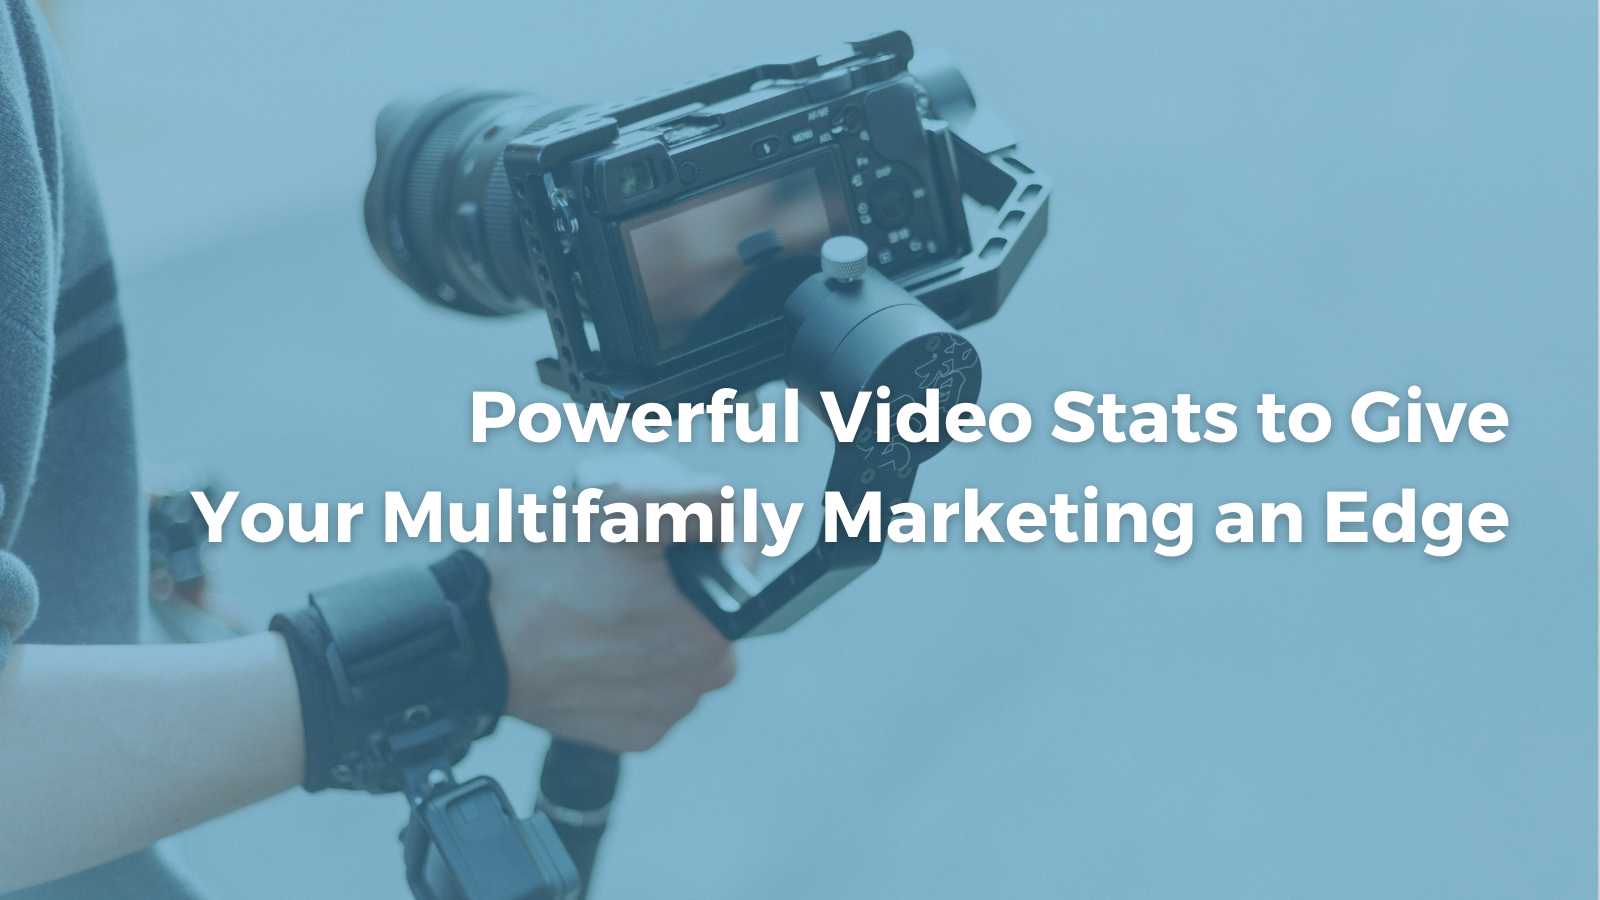 Powerful Video Stats to Give Your Multifamily Marketing an Edge